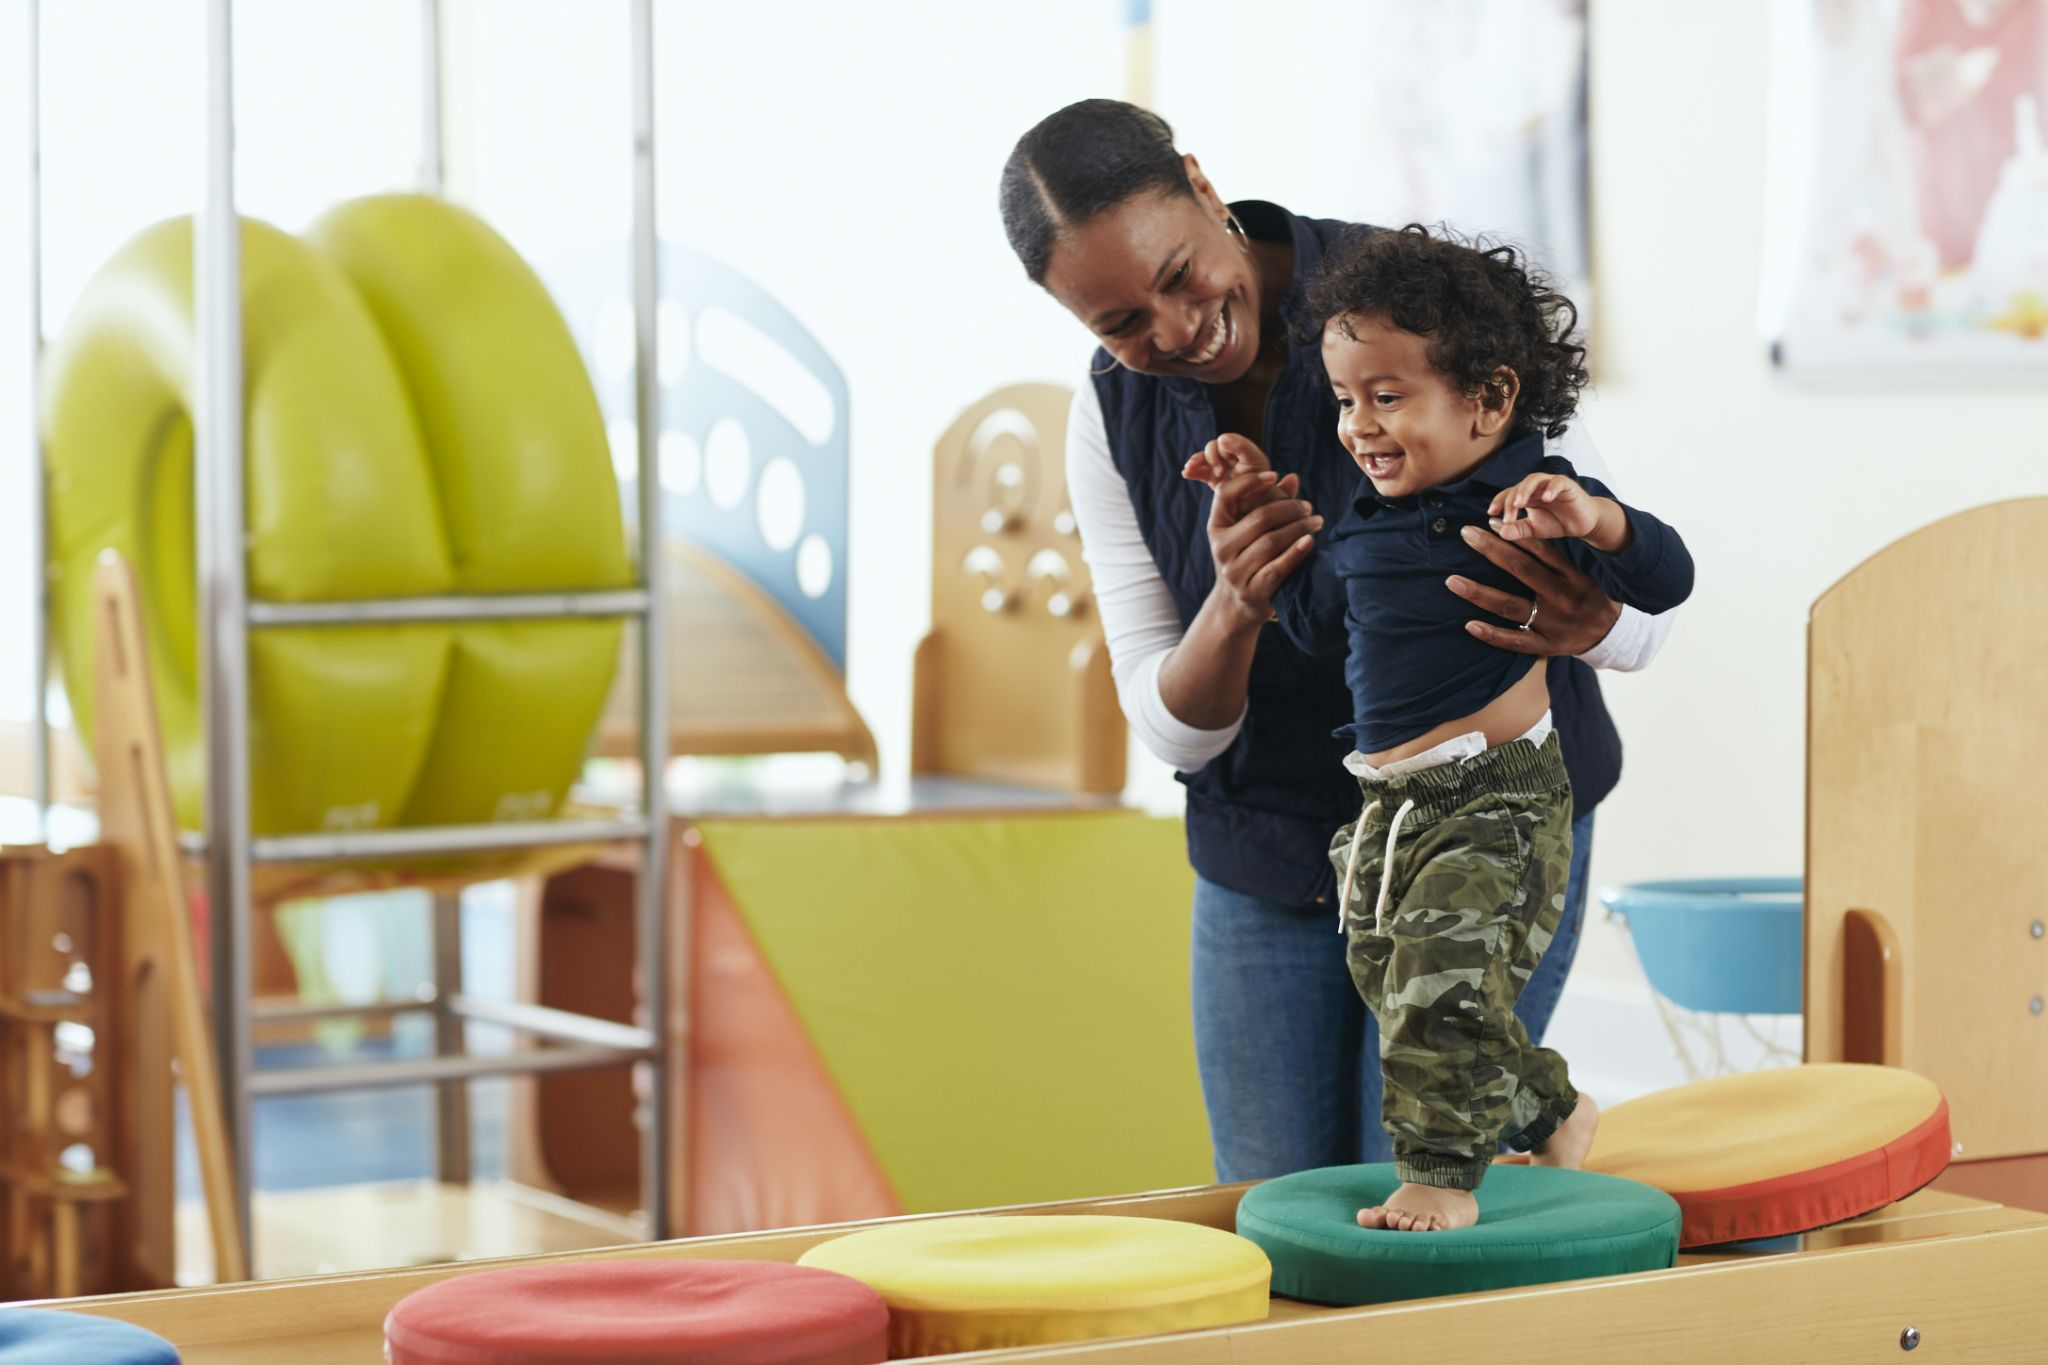 Child and parent playing at the Gymboree